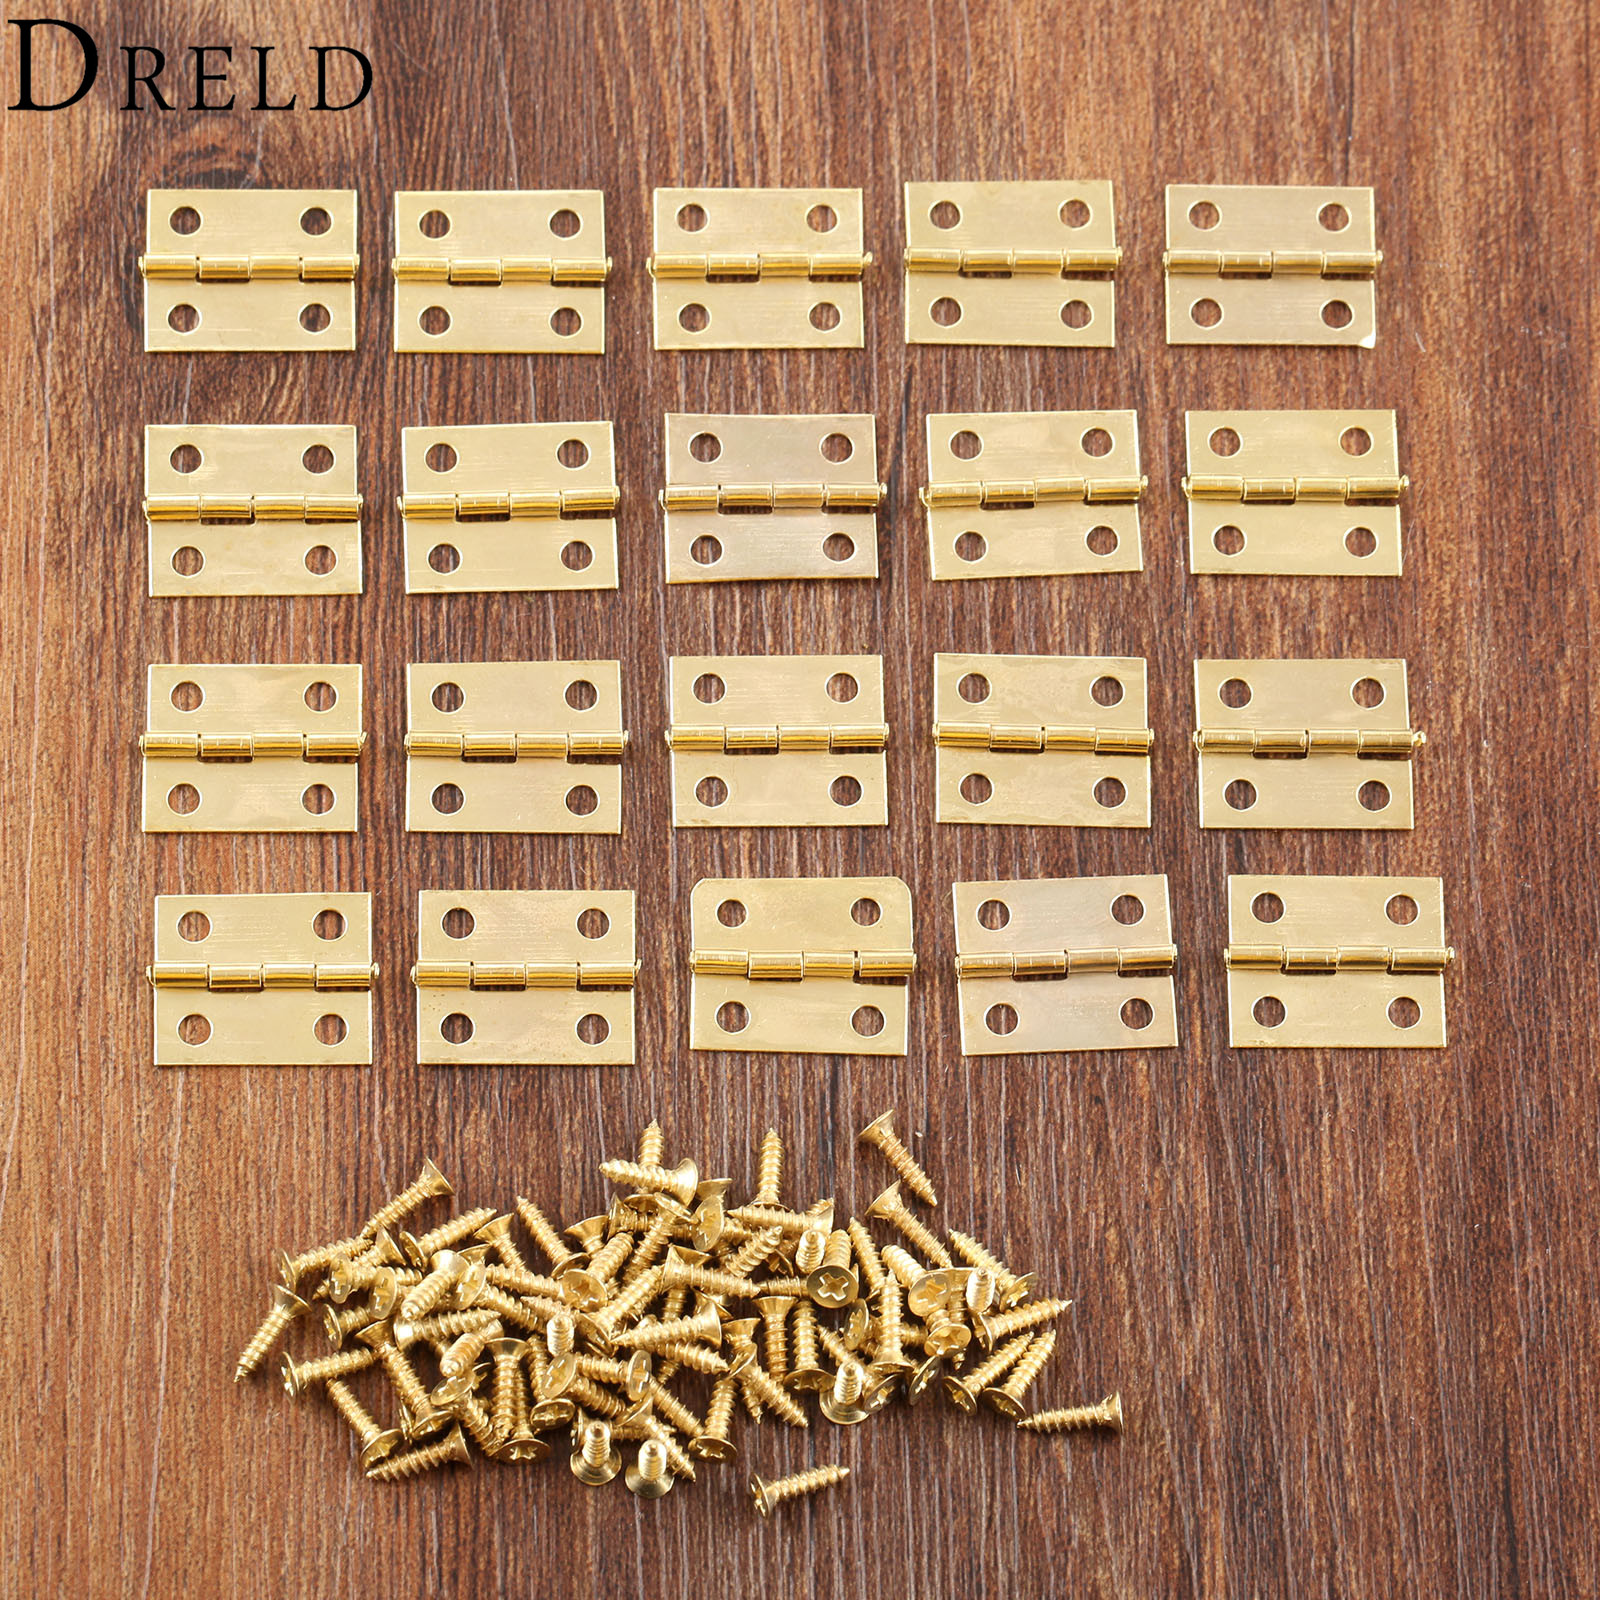 DRELD 20Pcs 18*16mm Mini Cabinet Hinges Furniture Hardware Gold 4 Holes Decorative Small Hinges for Suitcase Trunk Jewelry Box bqlzr 10pcs decorative antiquate vintage spring hinges for furniture diy repair page 1